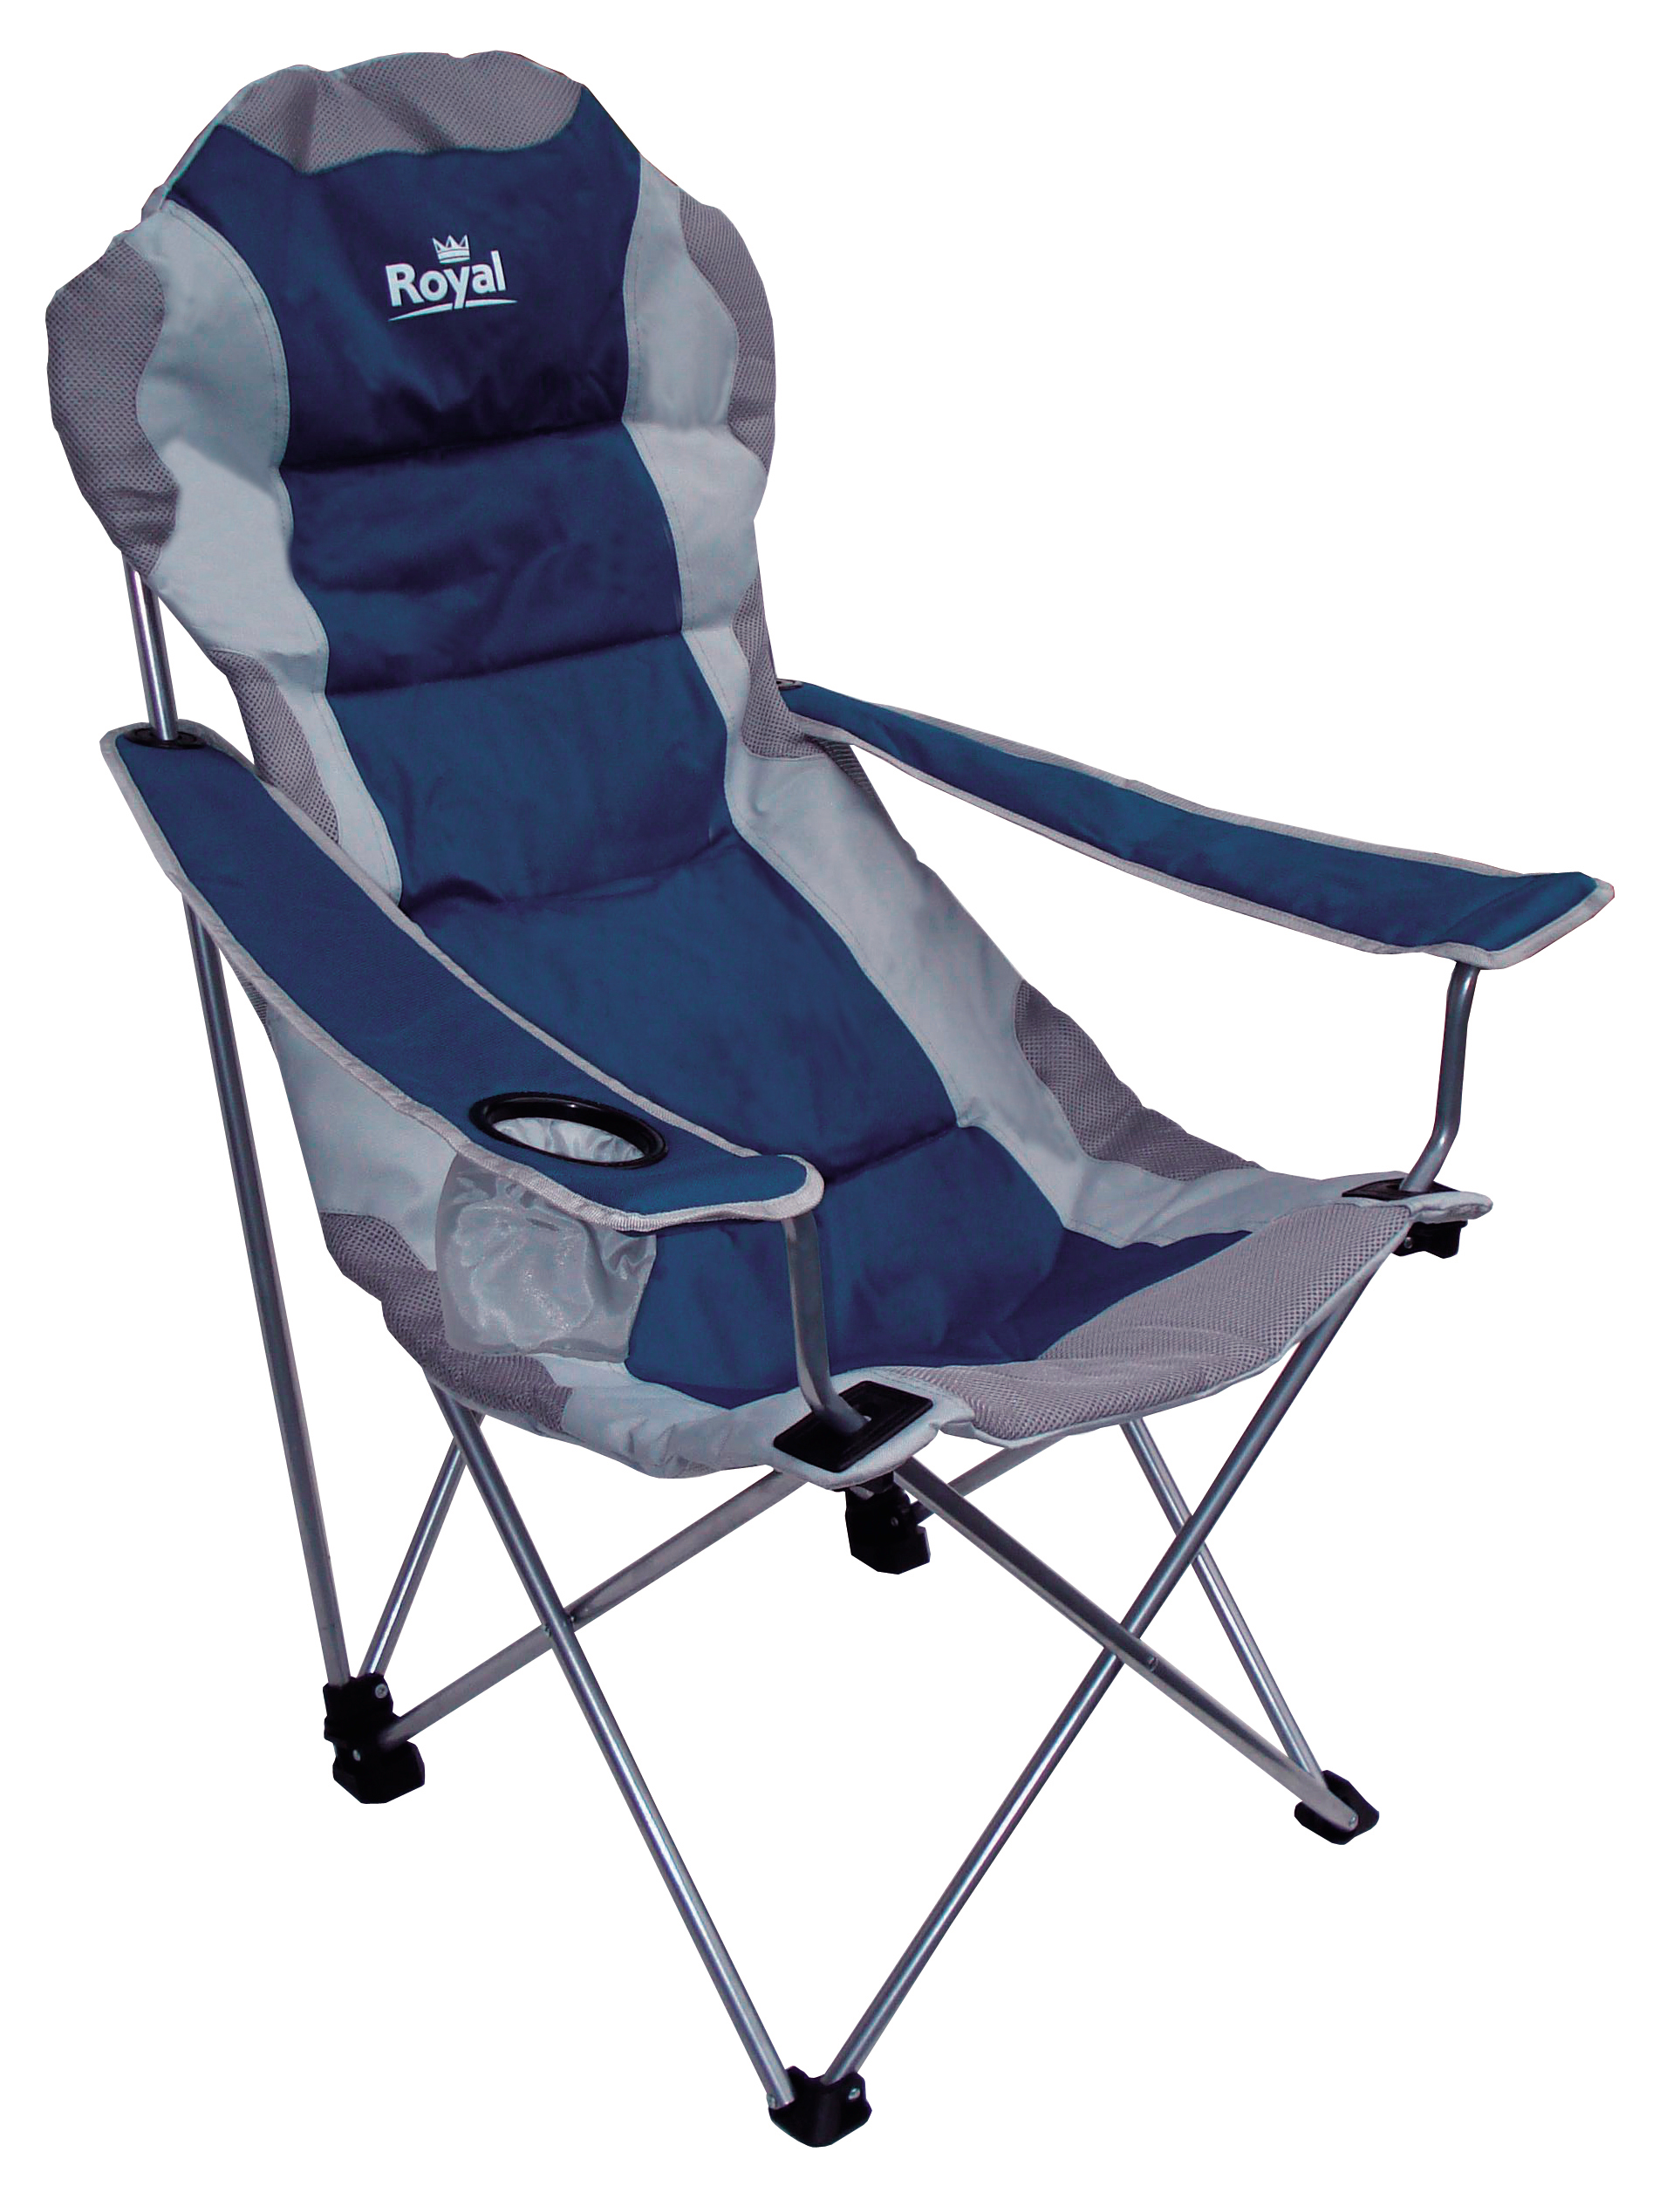 Folding Chairs For Camping supply on Folding Camping Chairs